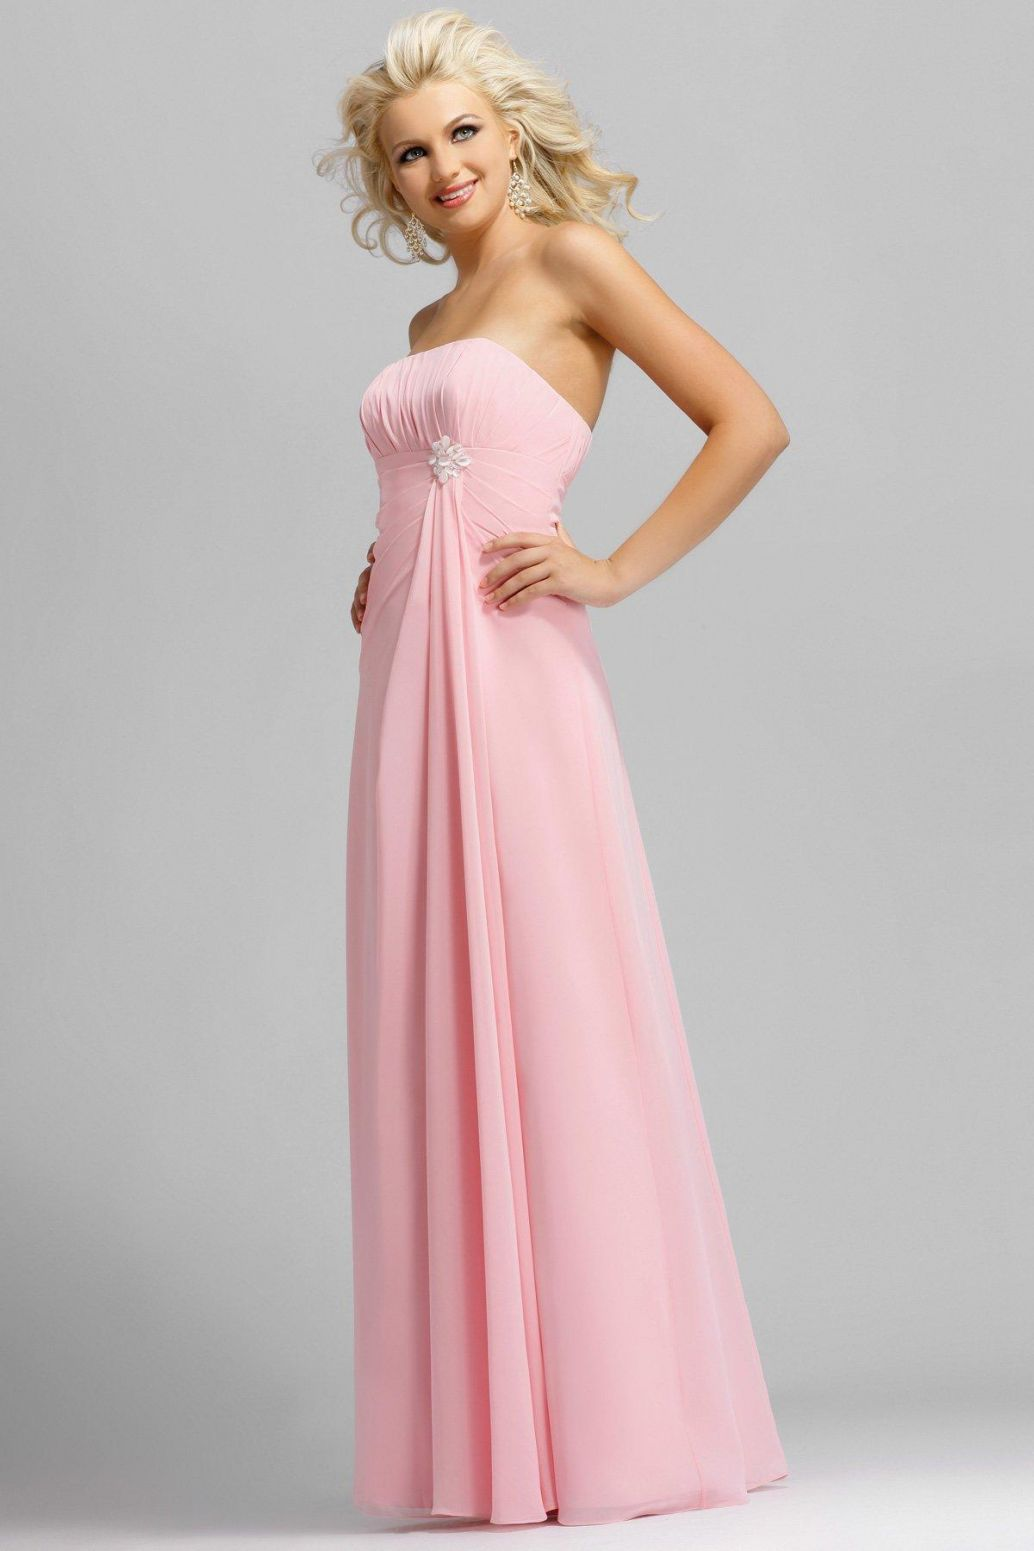 complimentary mother dresses with light pink bridesmaid dresses